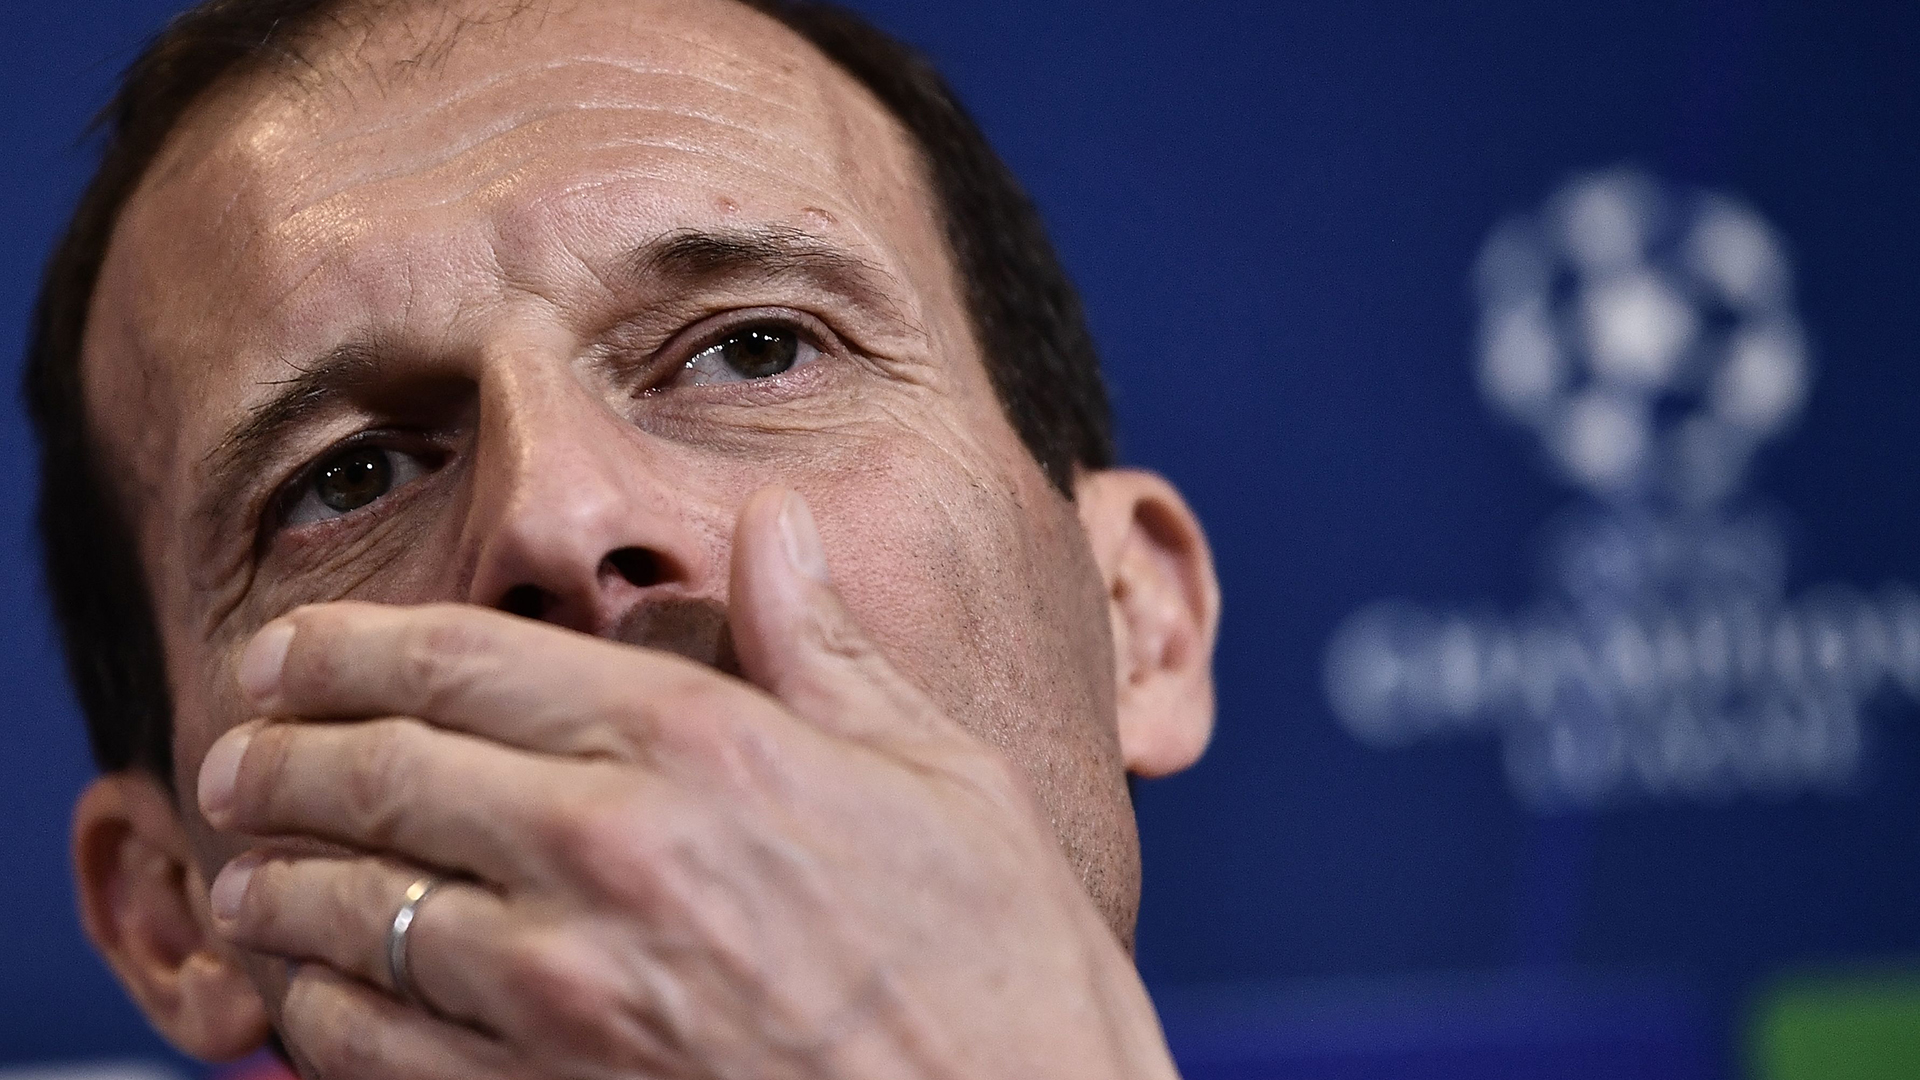 Massimiliano Allegri to leave Juventus after five years of domestic success